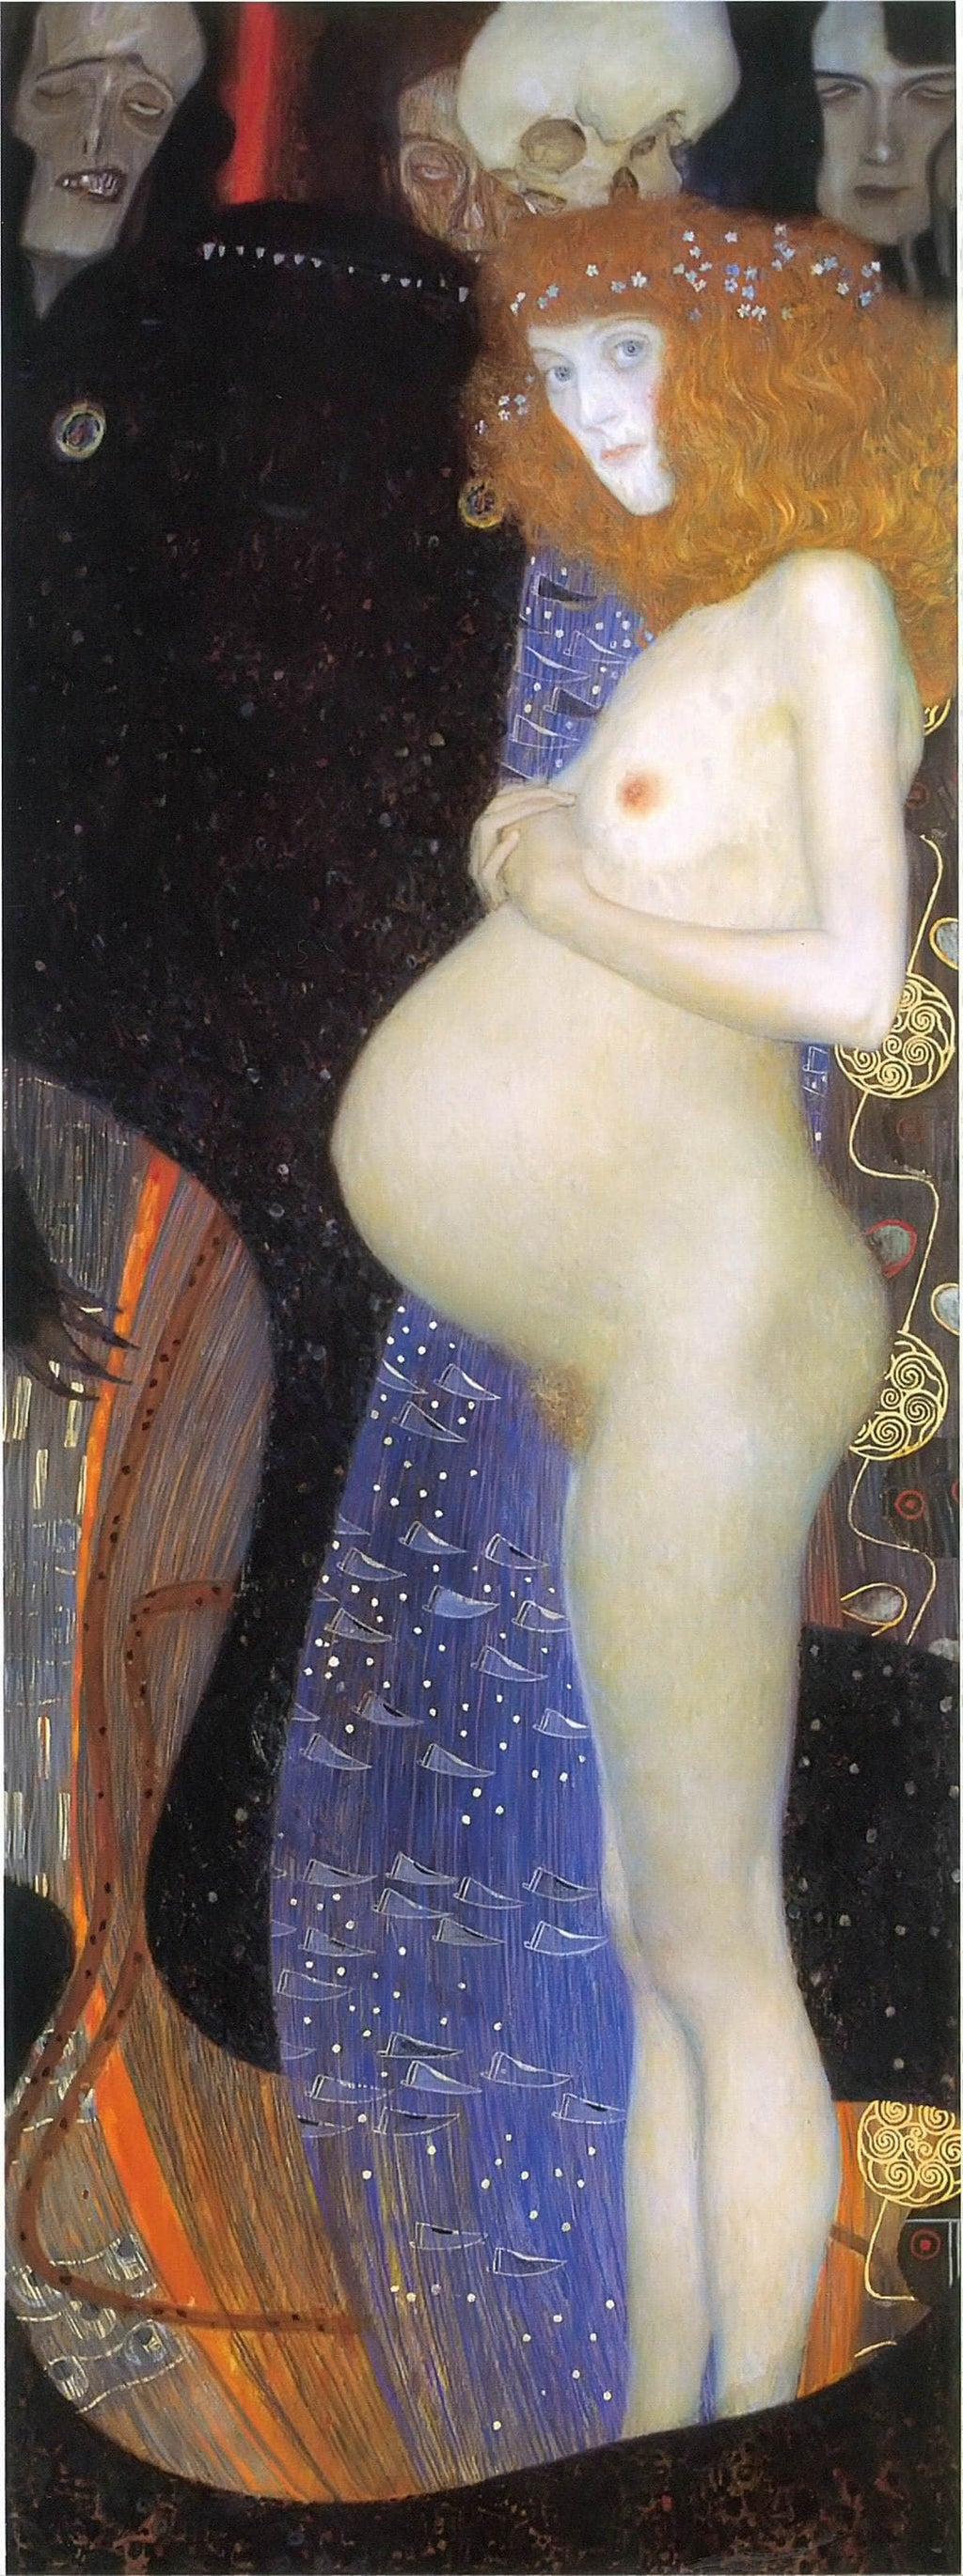 Hope I by Gustav Klimt